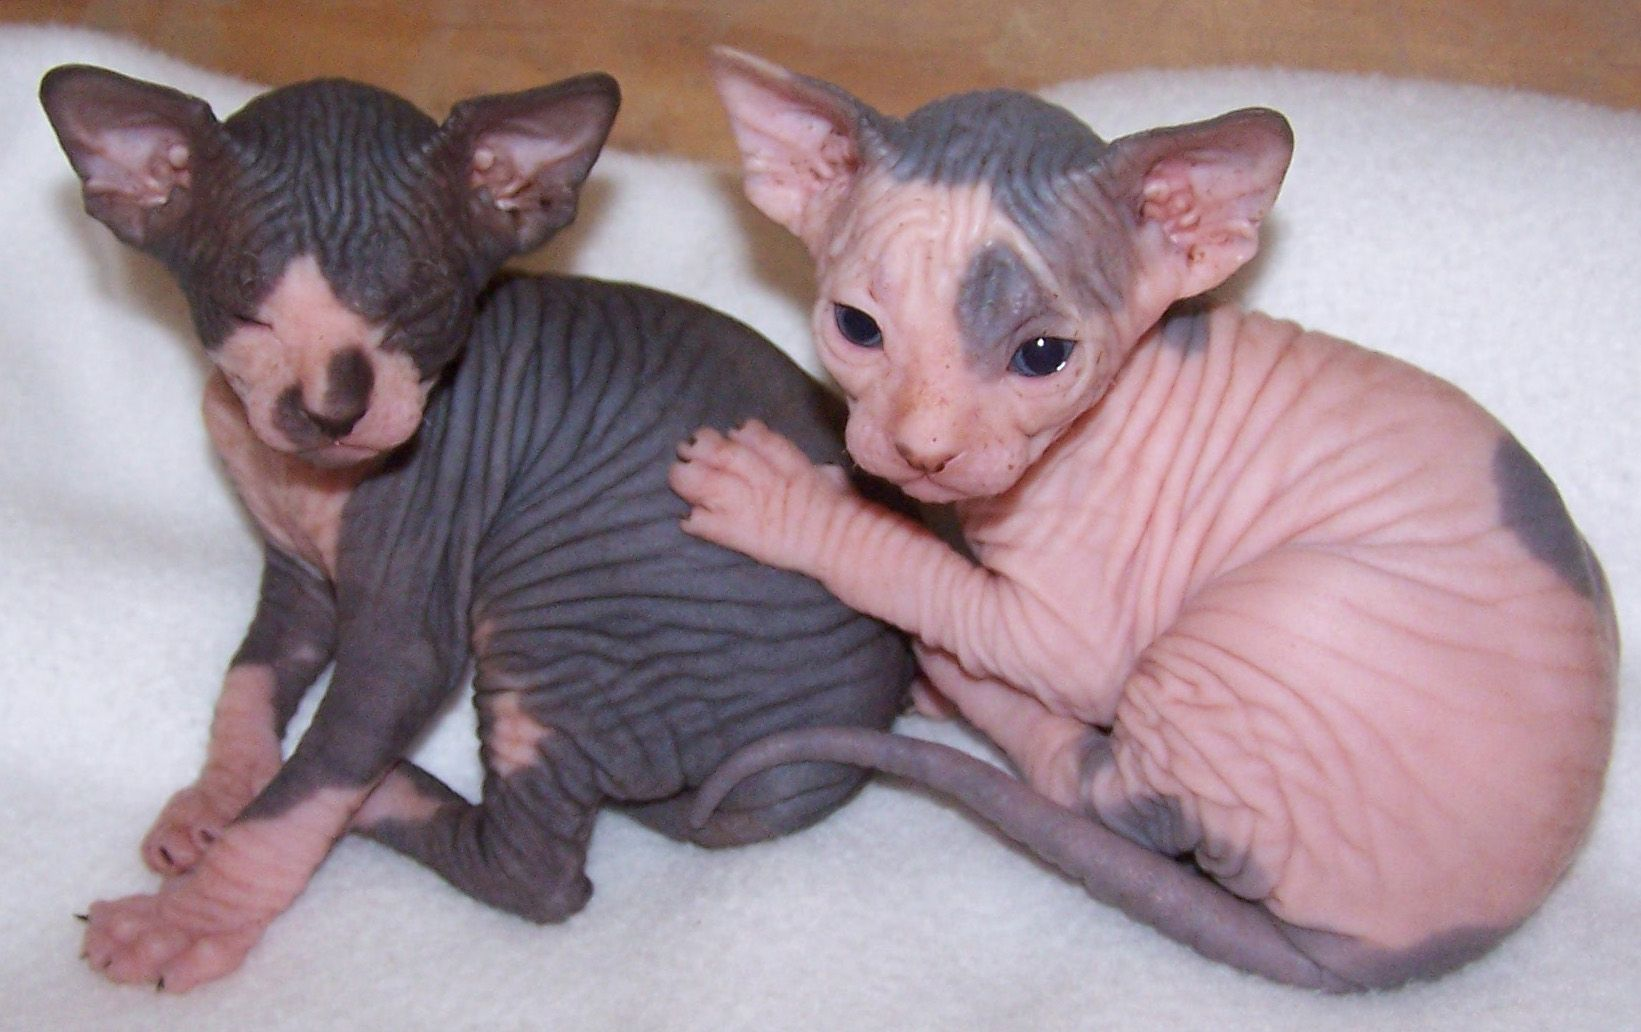 Sphynx Cats Scamsters Is Cheating Cat Lovers By Selling Them Shaved Kittens With Images Sphynx Kittens For Sale Pregnant Cat Sphynx Cat